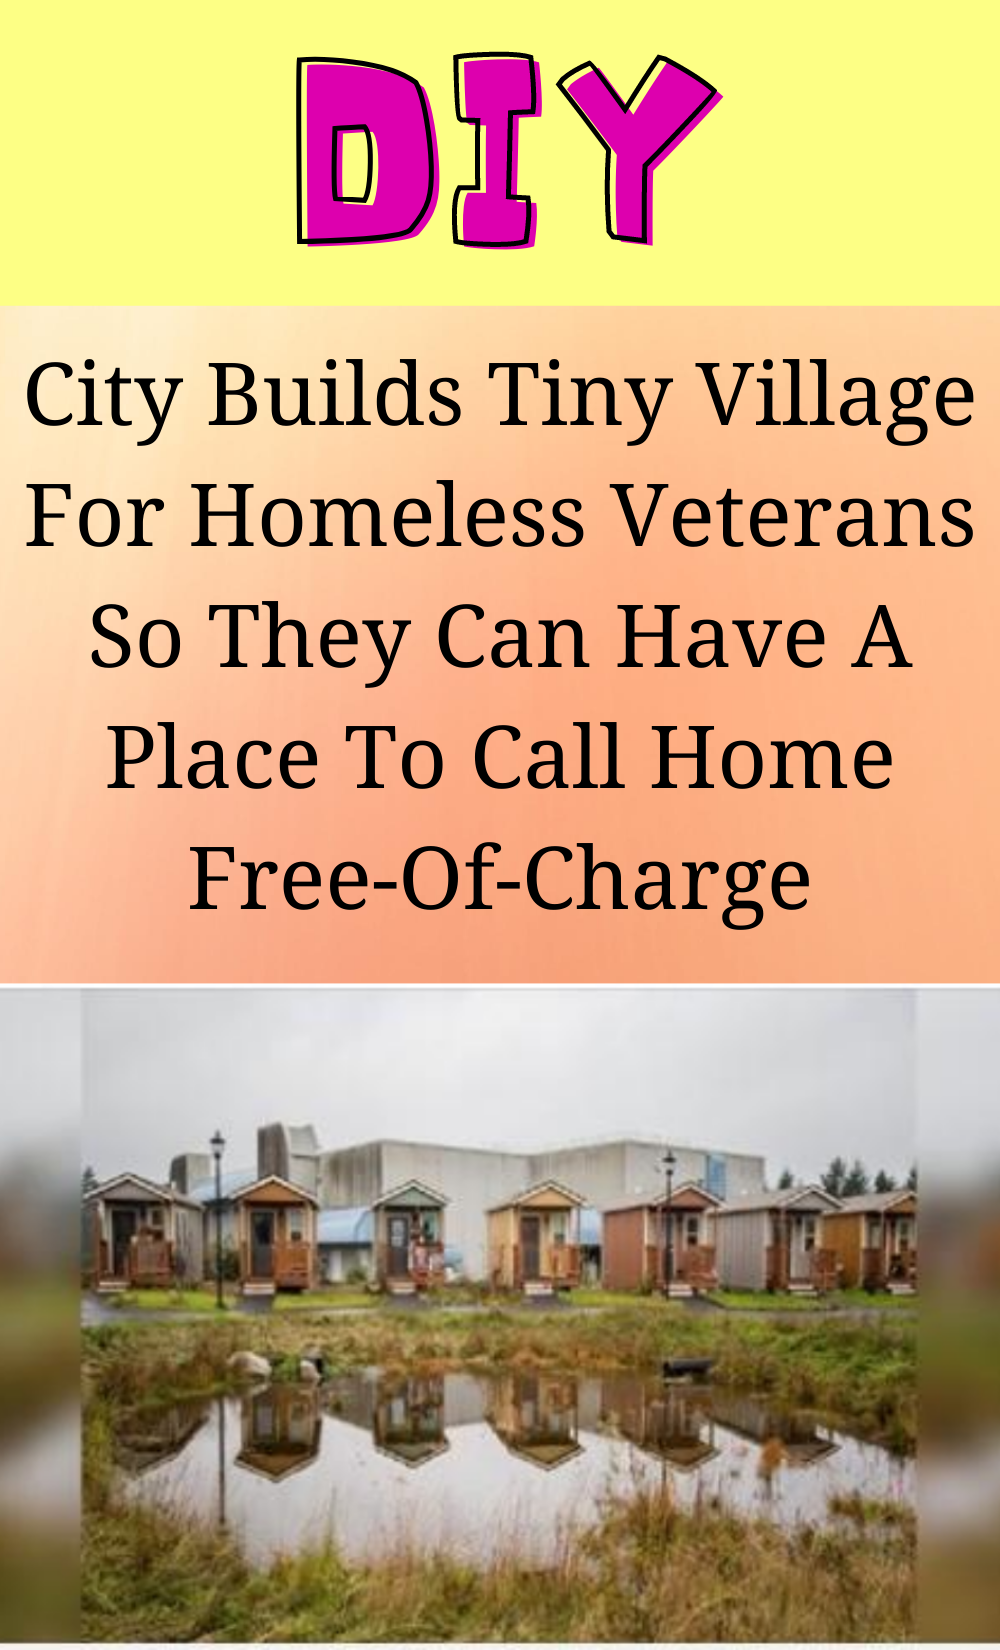 City Builds Tiny Village For Homeless Veterans So They Can Have A Place To Call Home Free Of Charge Diy Life Hacks Diy Life Home Free